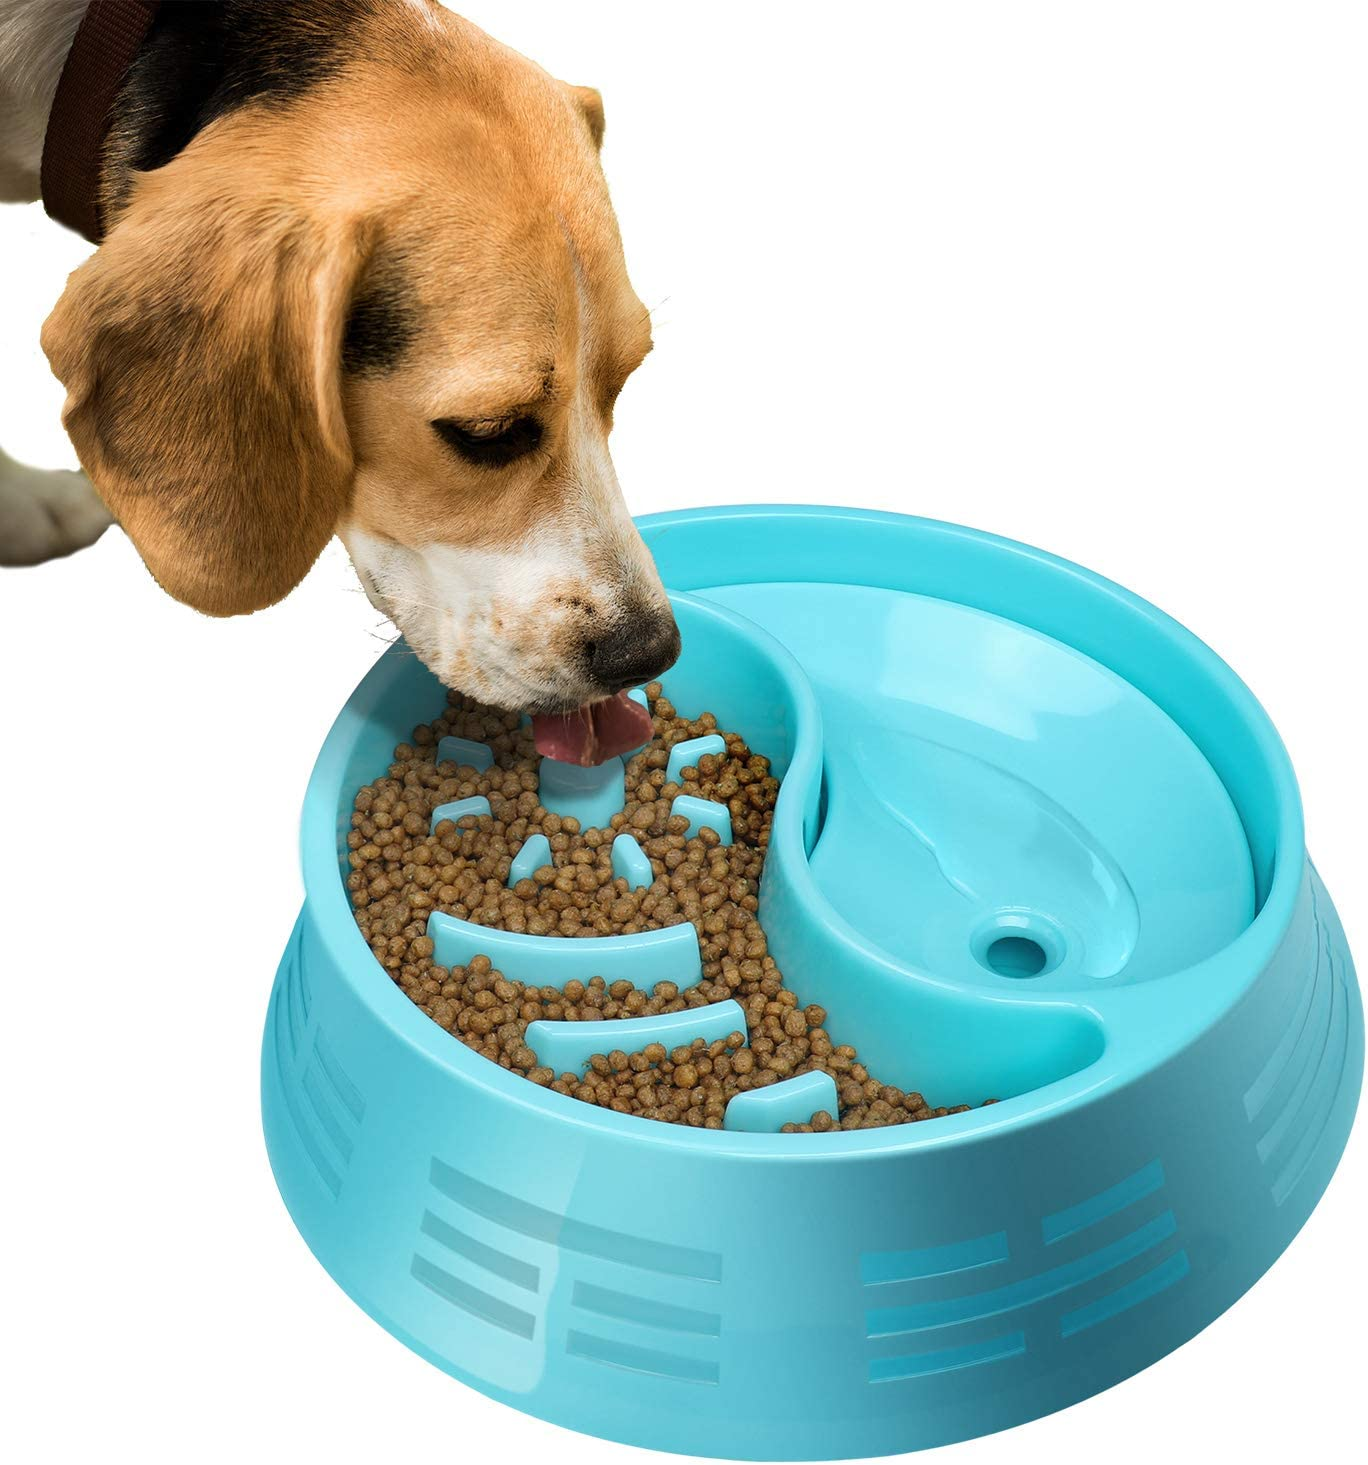 Slow Feeder Eating Dog Bowls Fun Feeder Non Slip Pet Bowl, Dog Food and Water Plastic Double Bowls for Small Medium Large Dogs Blue